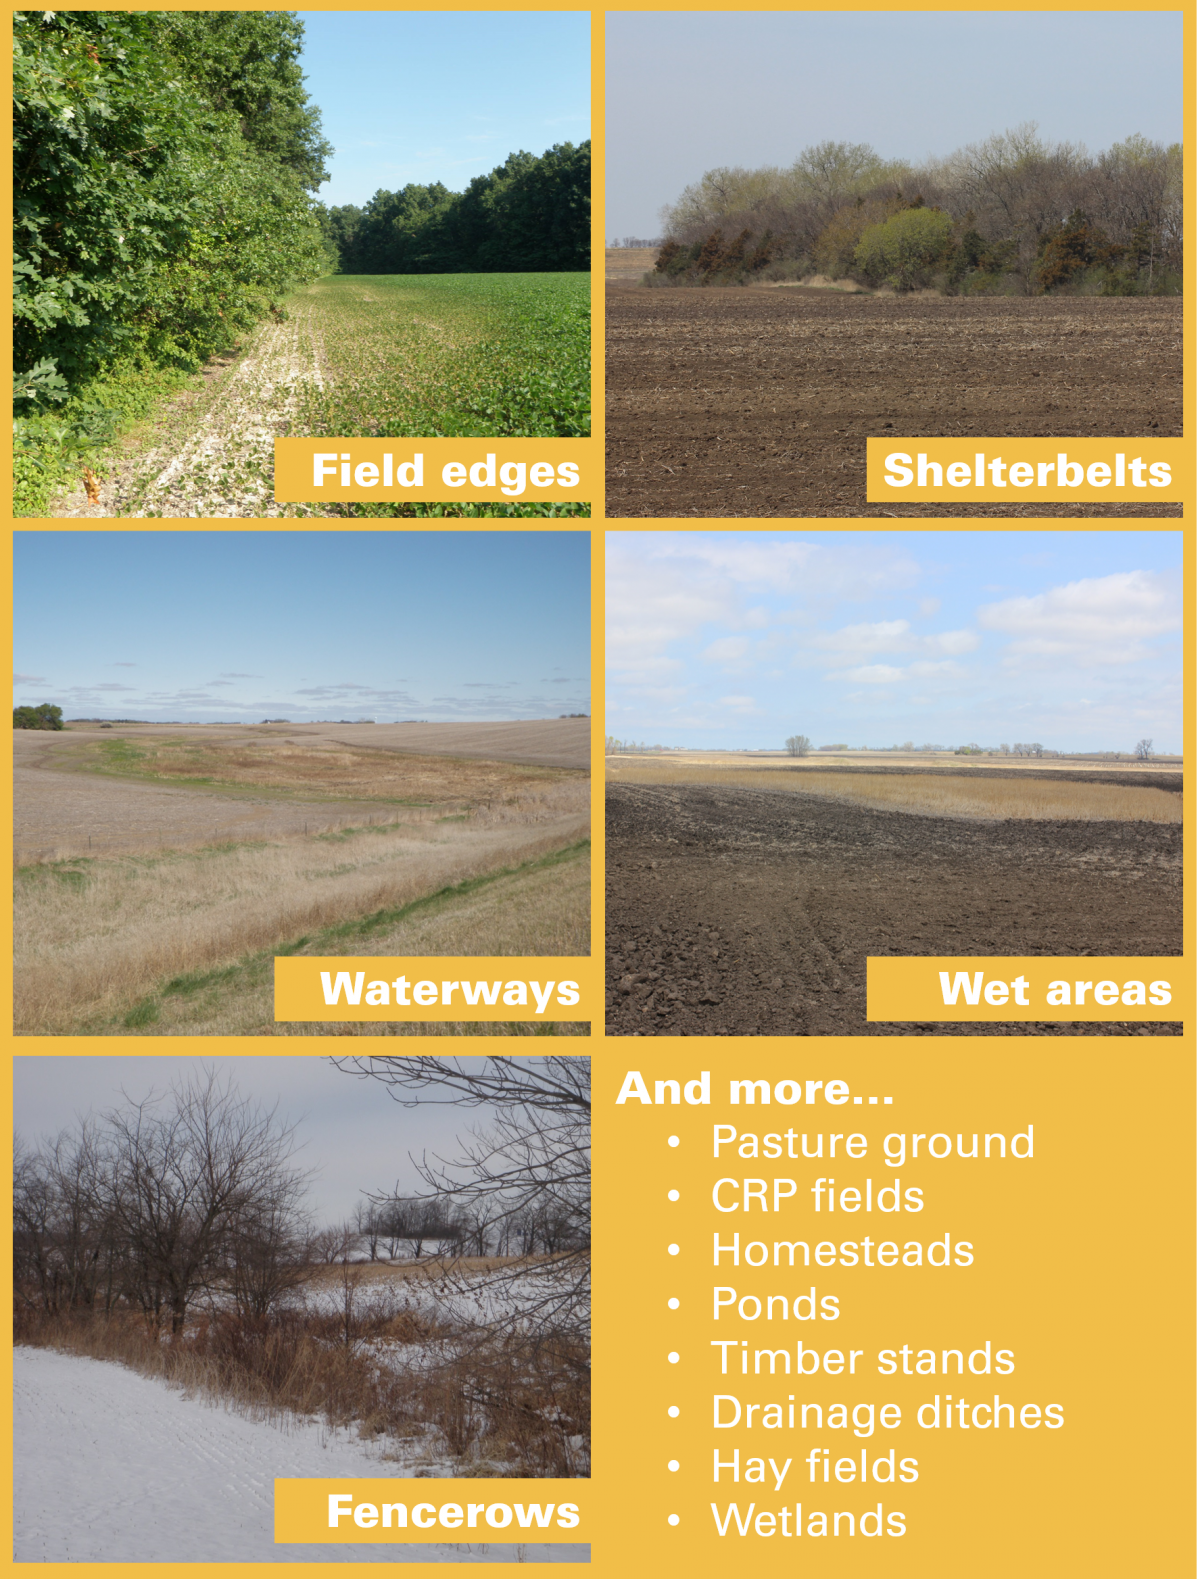 and more... pasture ground, CRP fields, homesteads, ponds, timber stands, drainage ditches, hay fields, wetlands